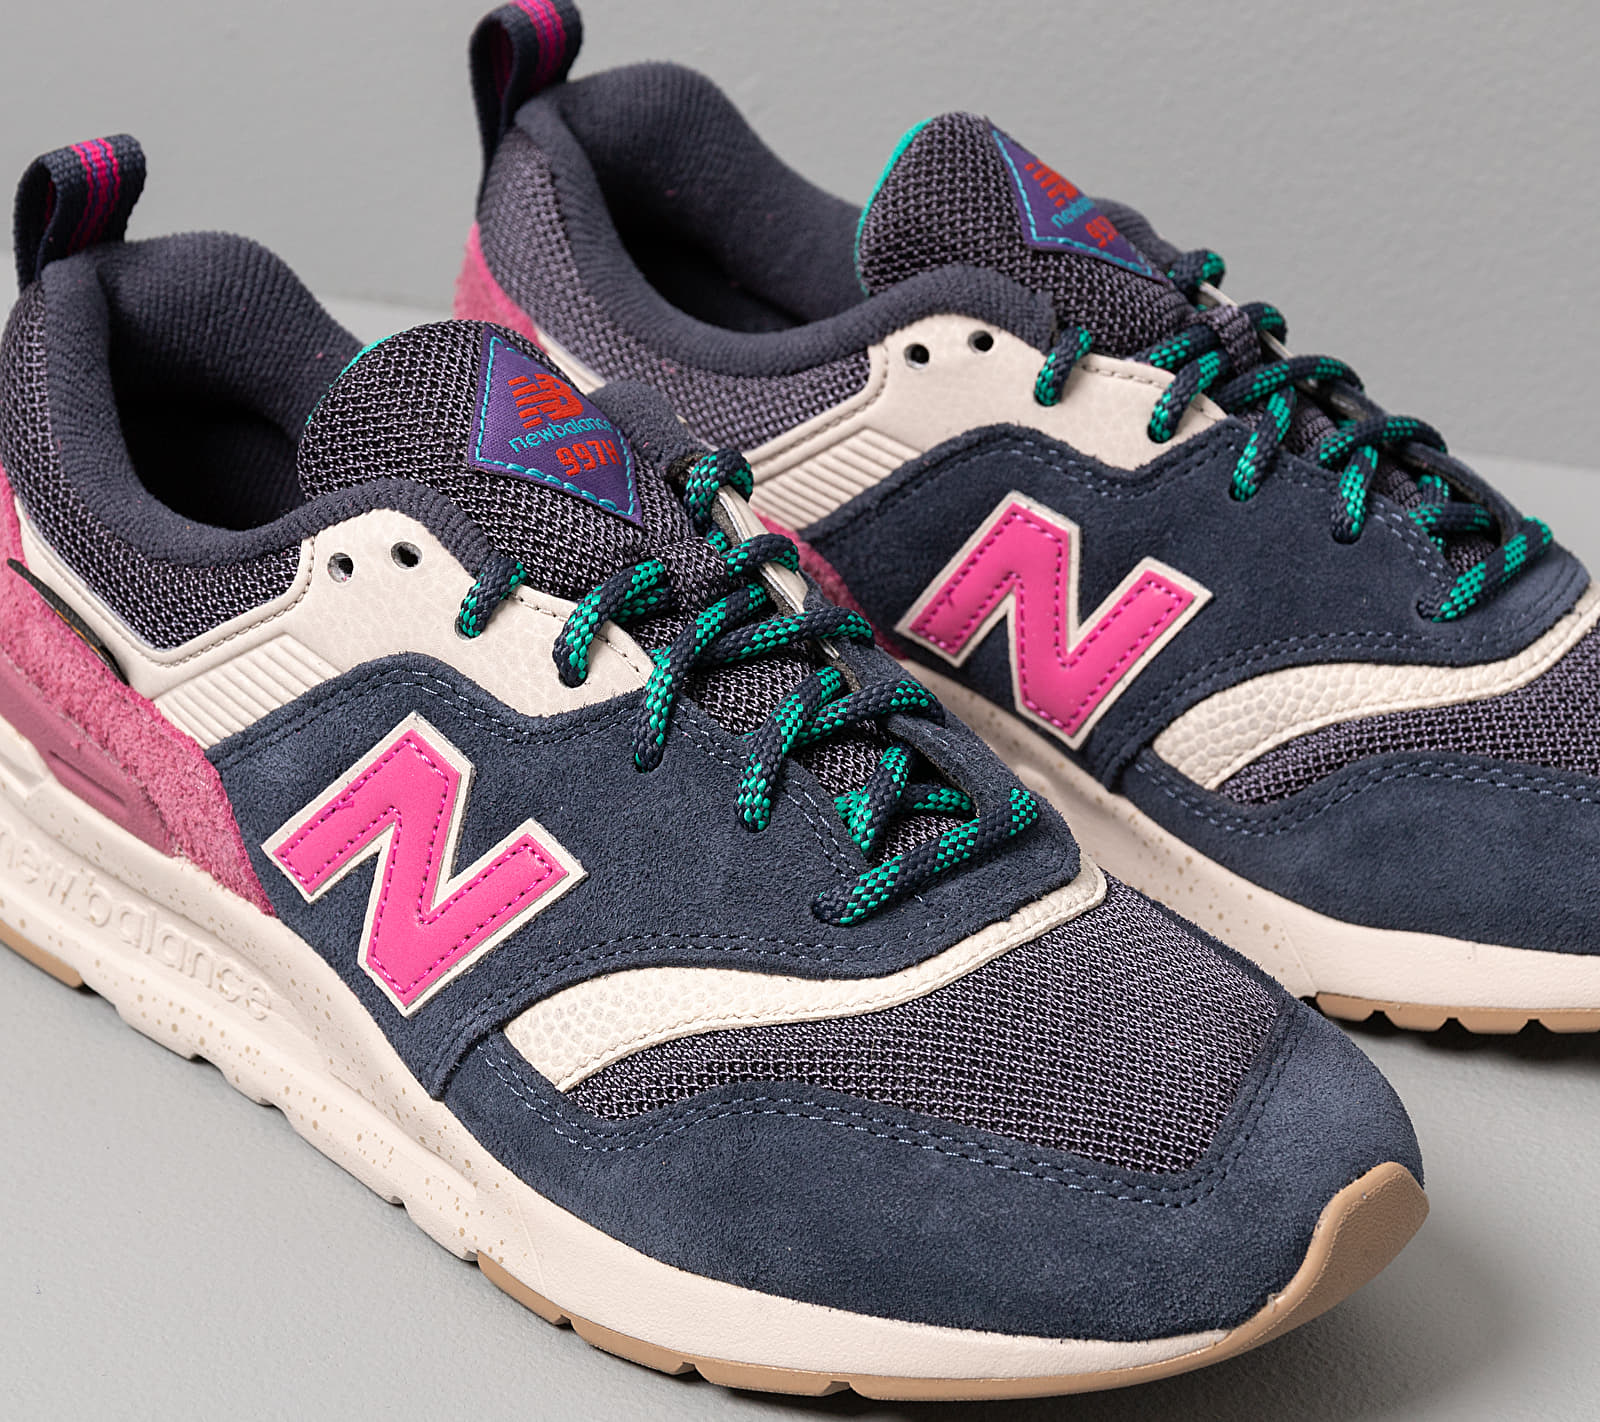 New Balance 997 Navy/ Pink, Multicolour